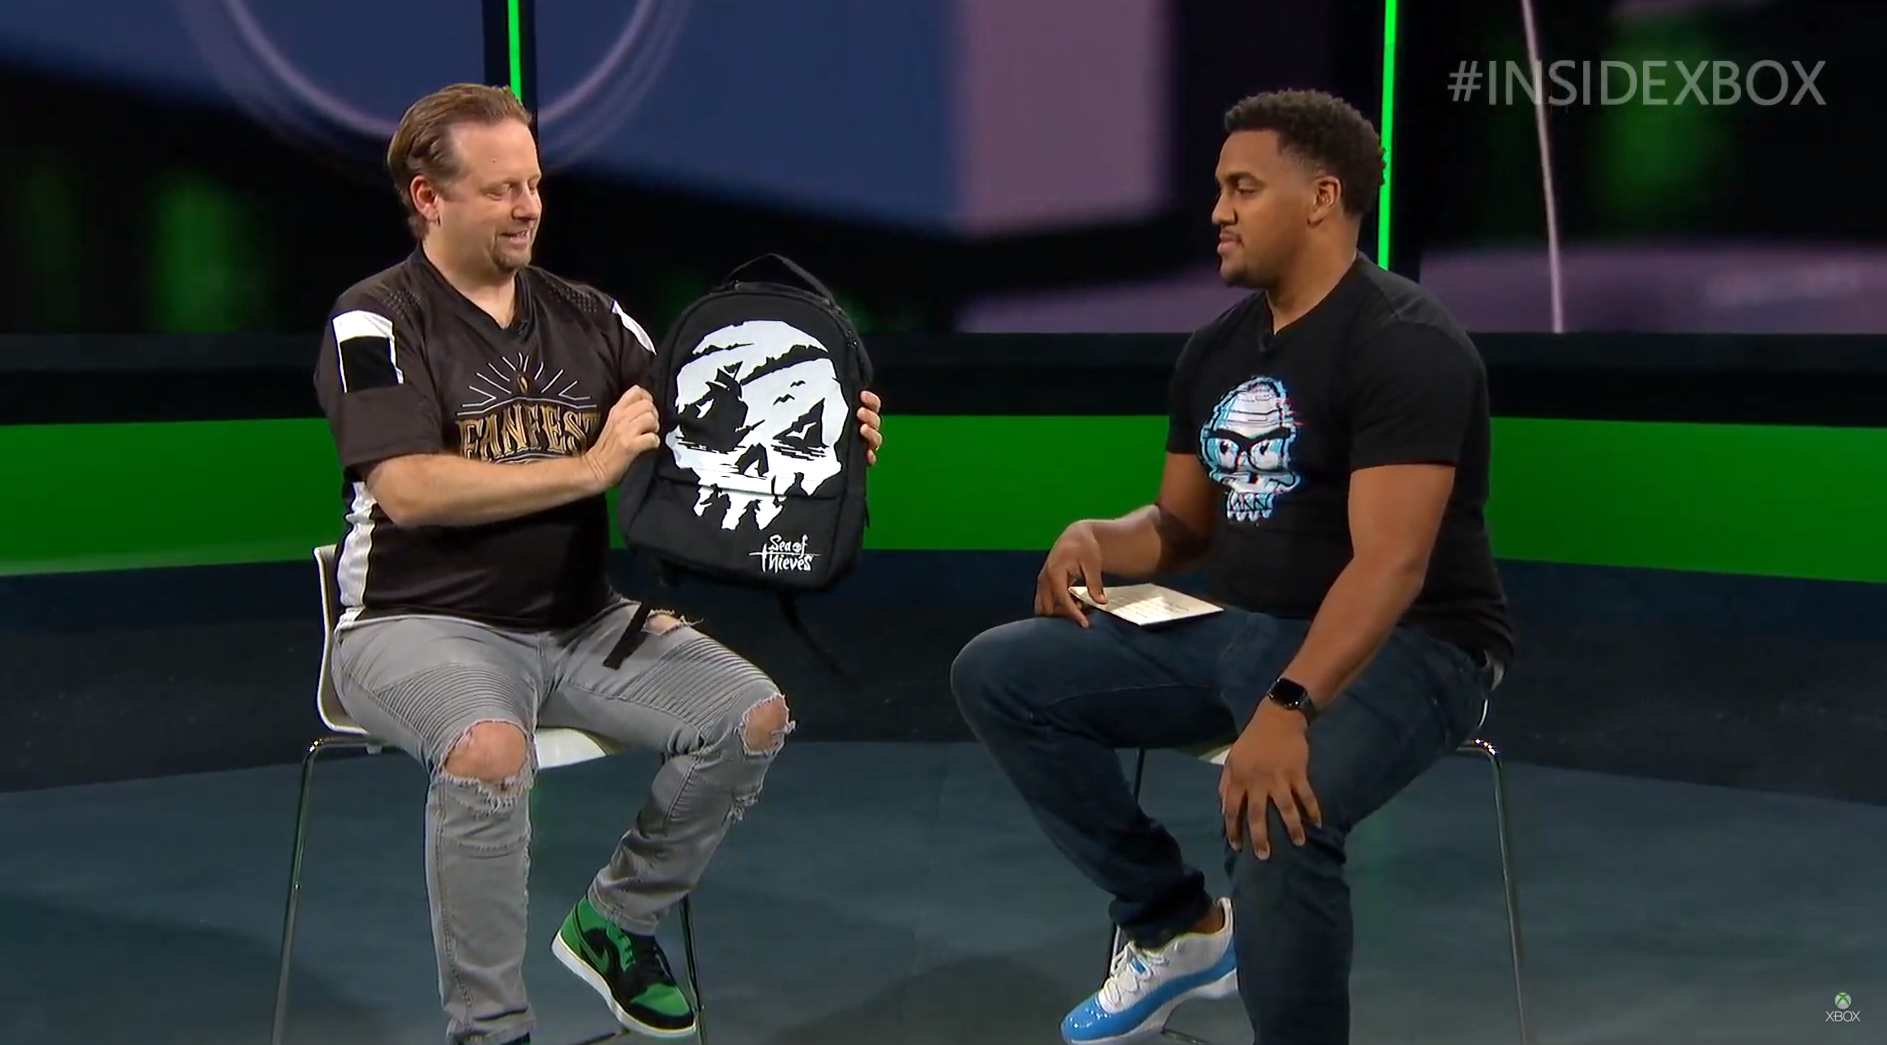 Check out the Sea of Thieves Secret backpack for Xbox FanFest 2019